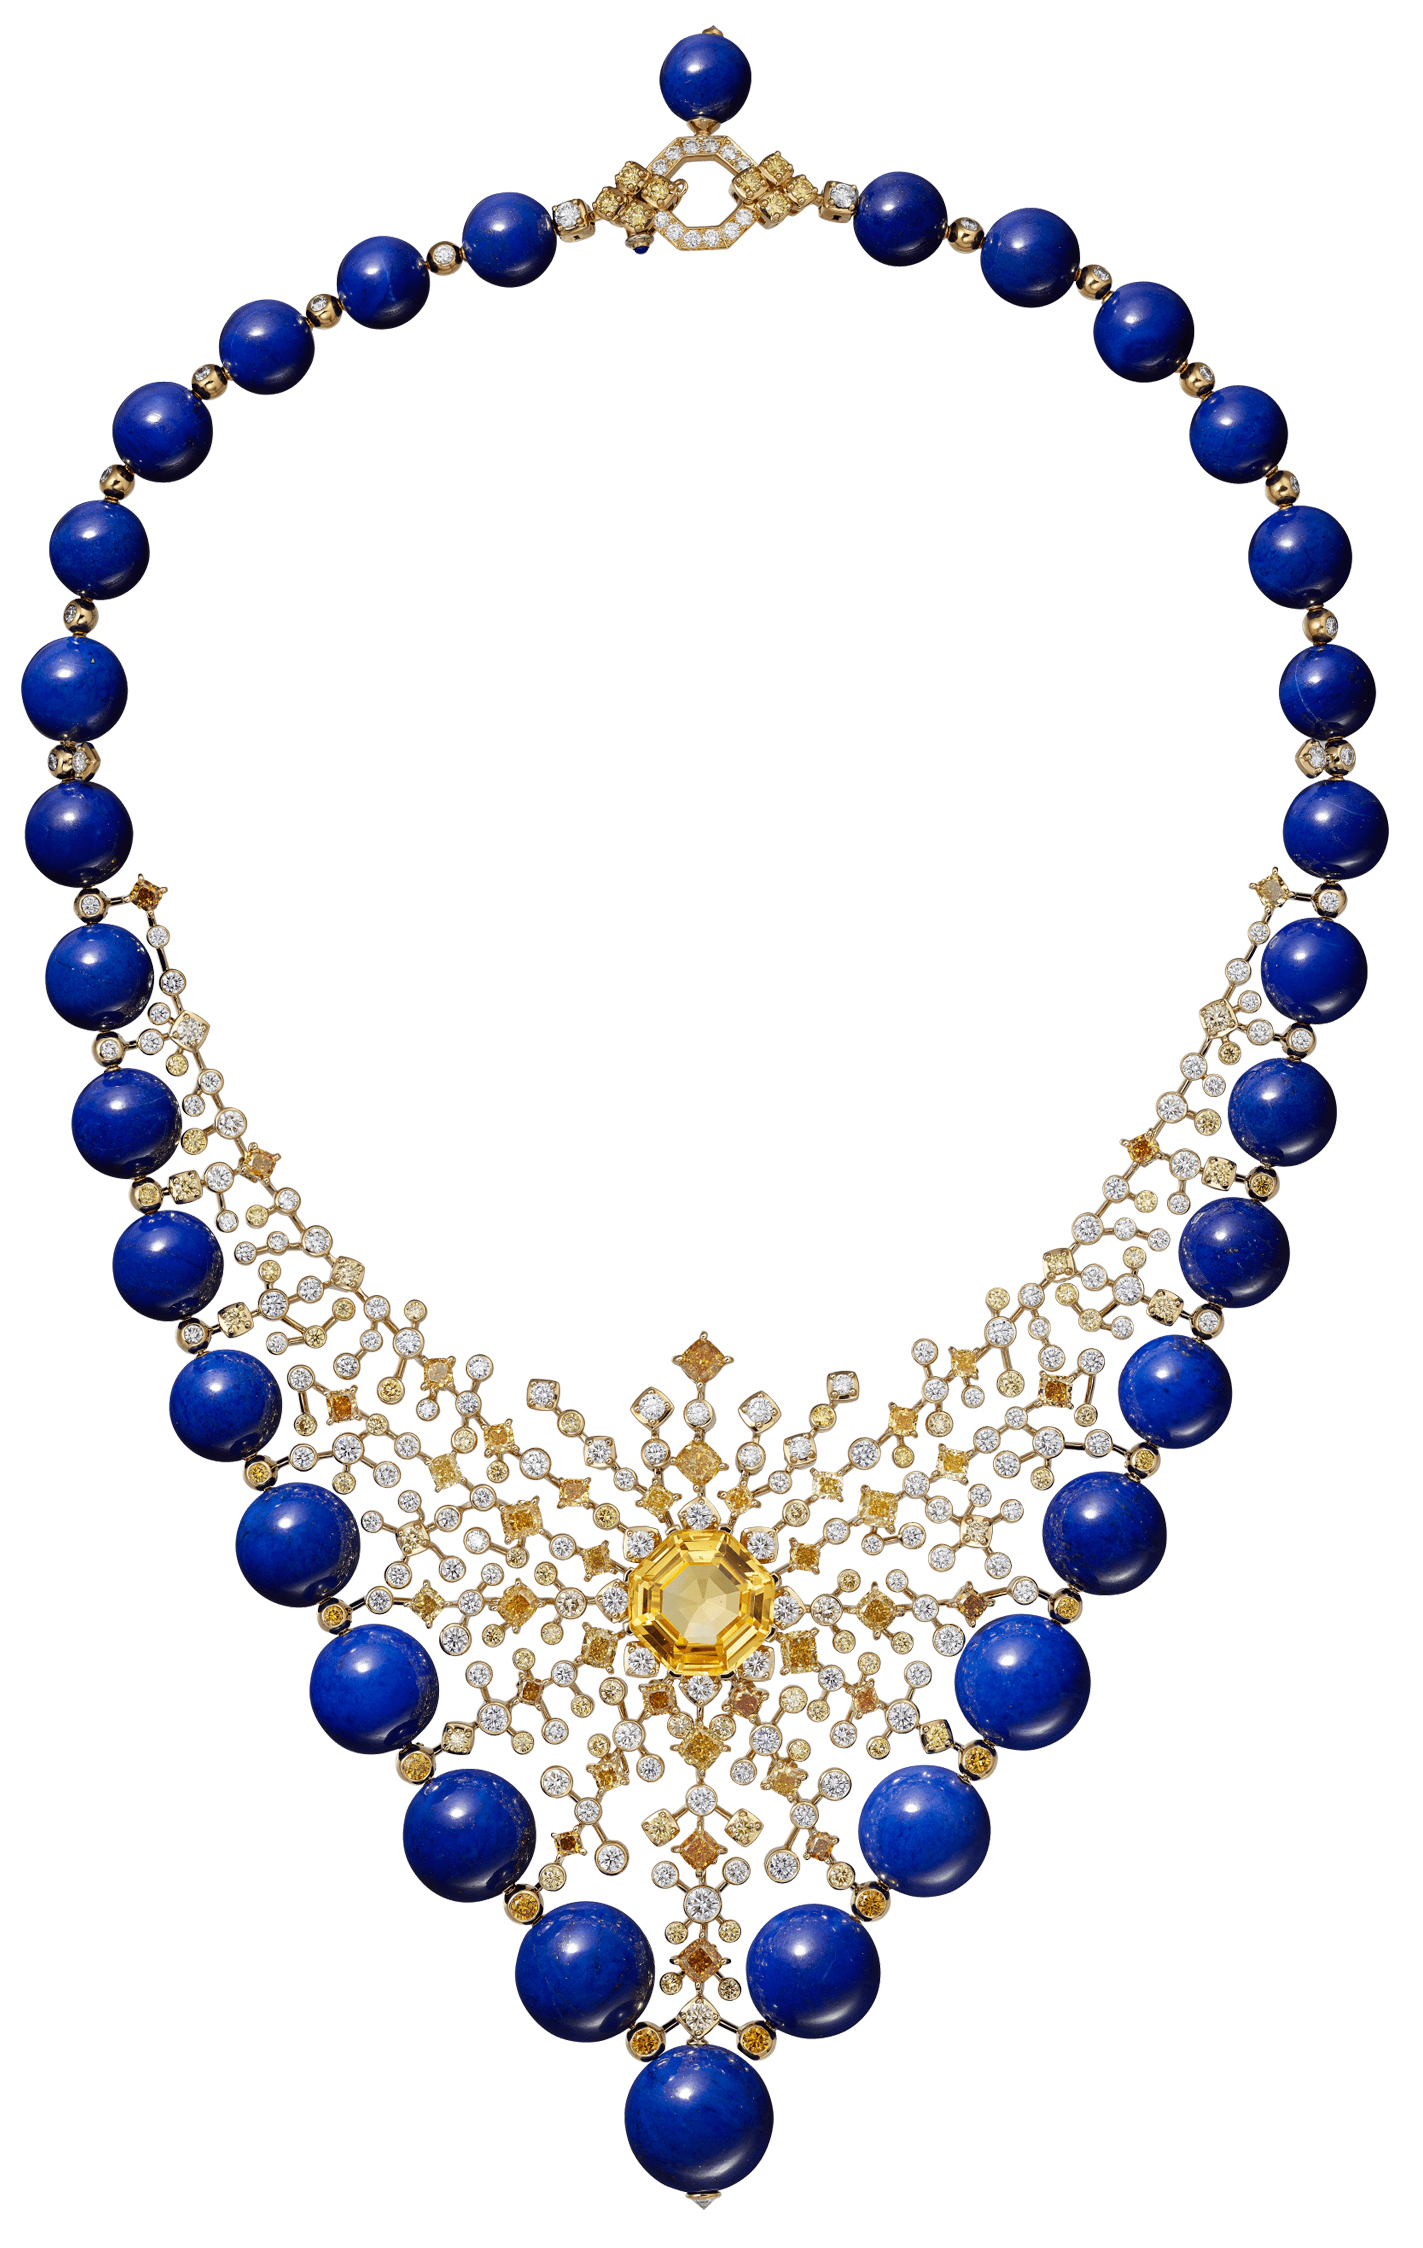 Cartier's Equinoxe necklace from the Magnitude Collection